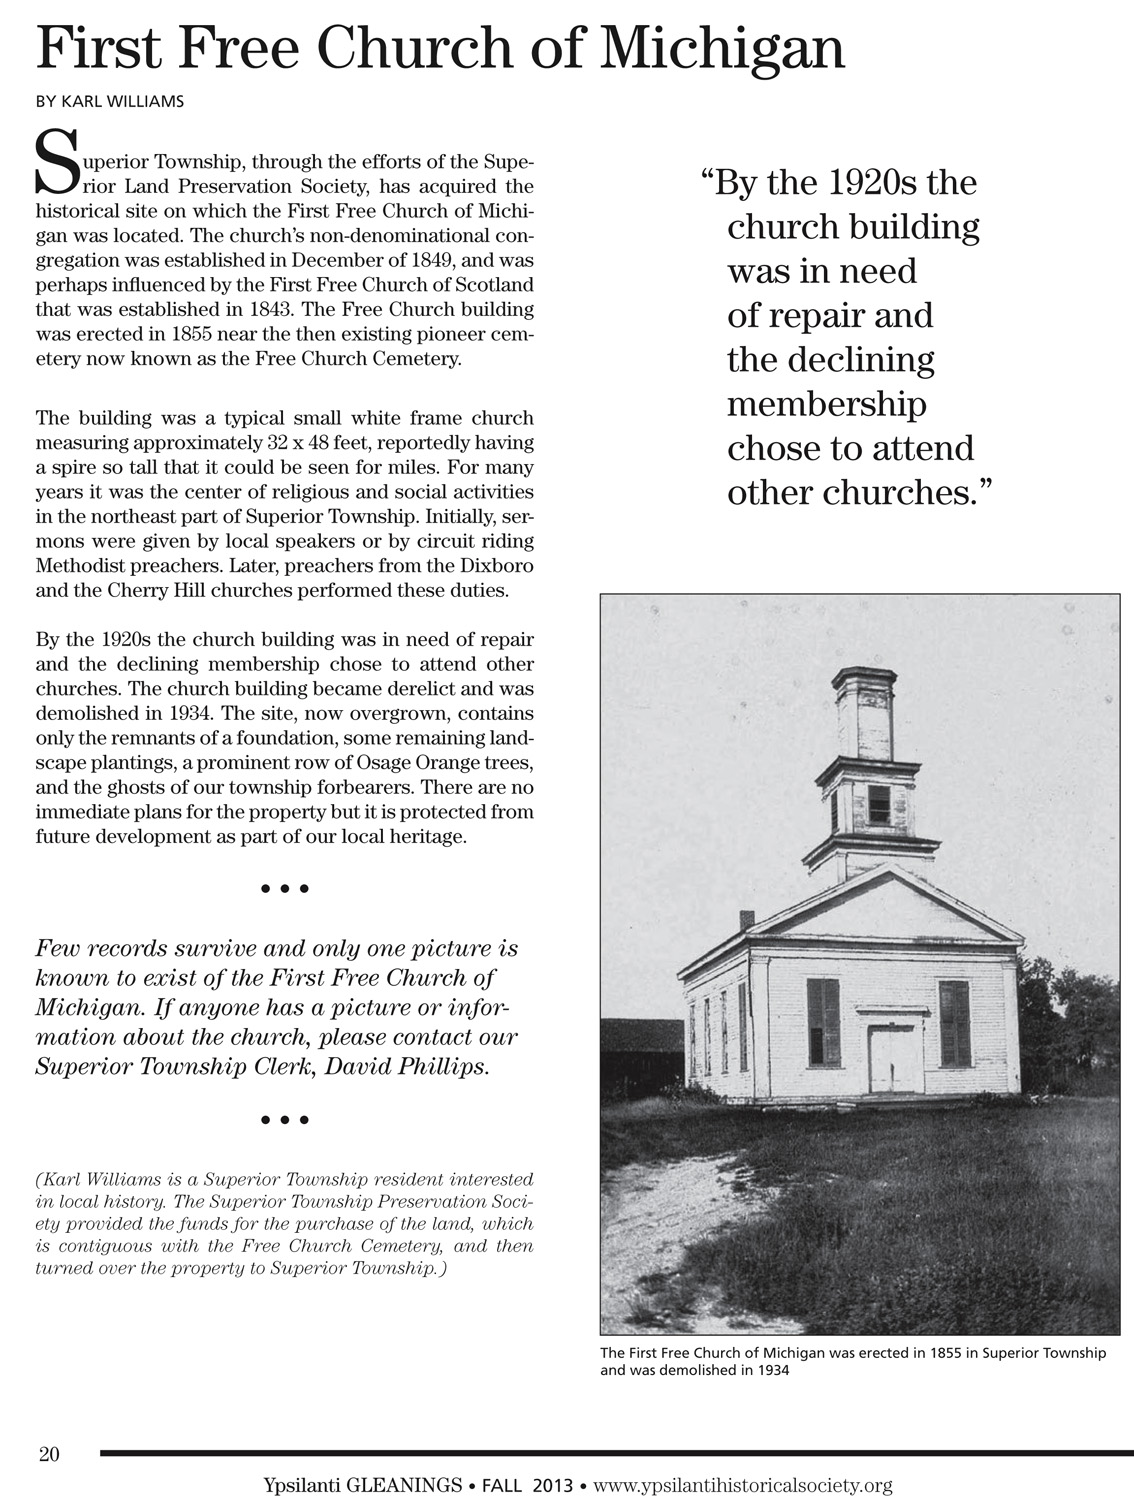 First Free Church of Michigan image